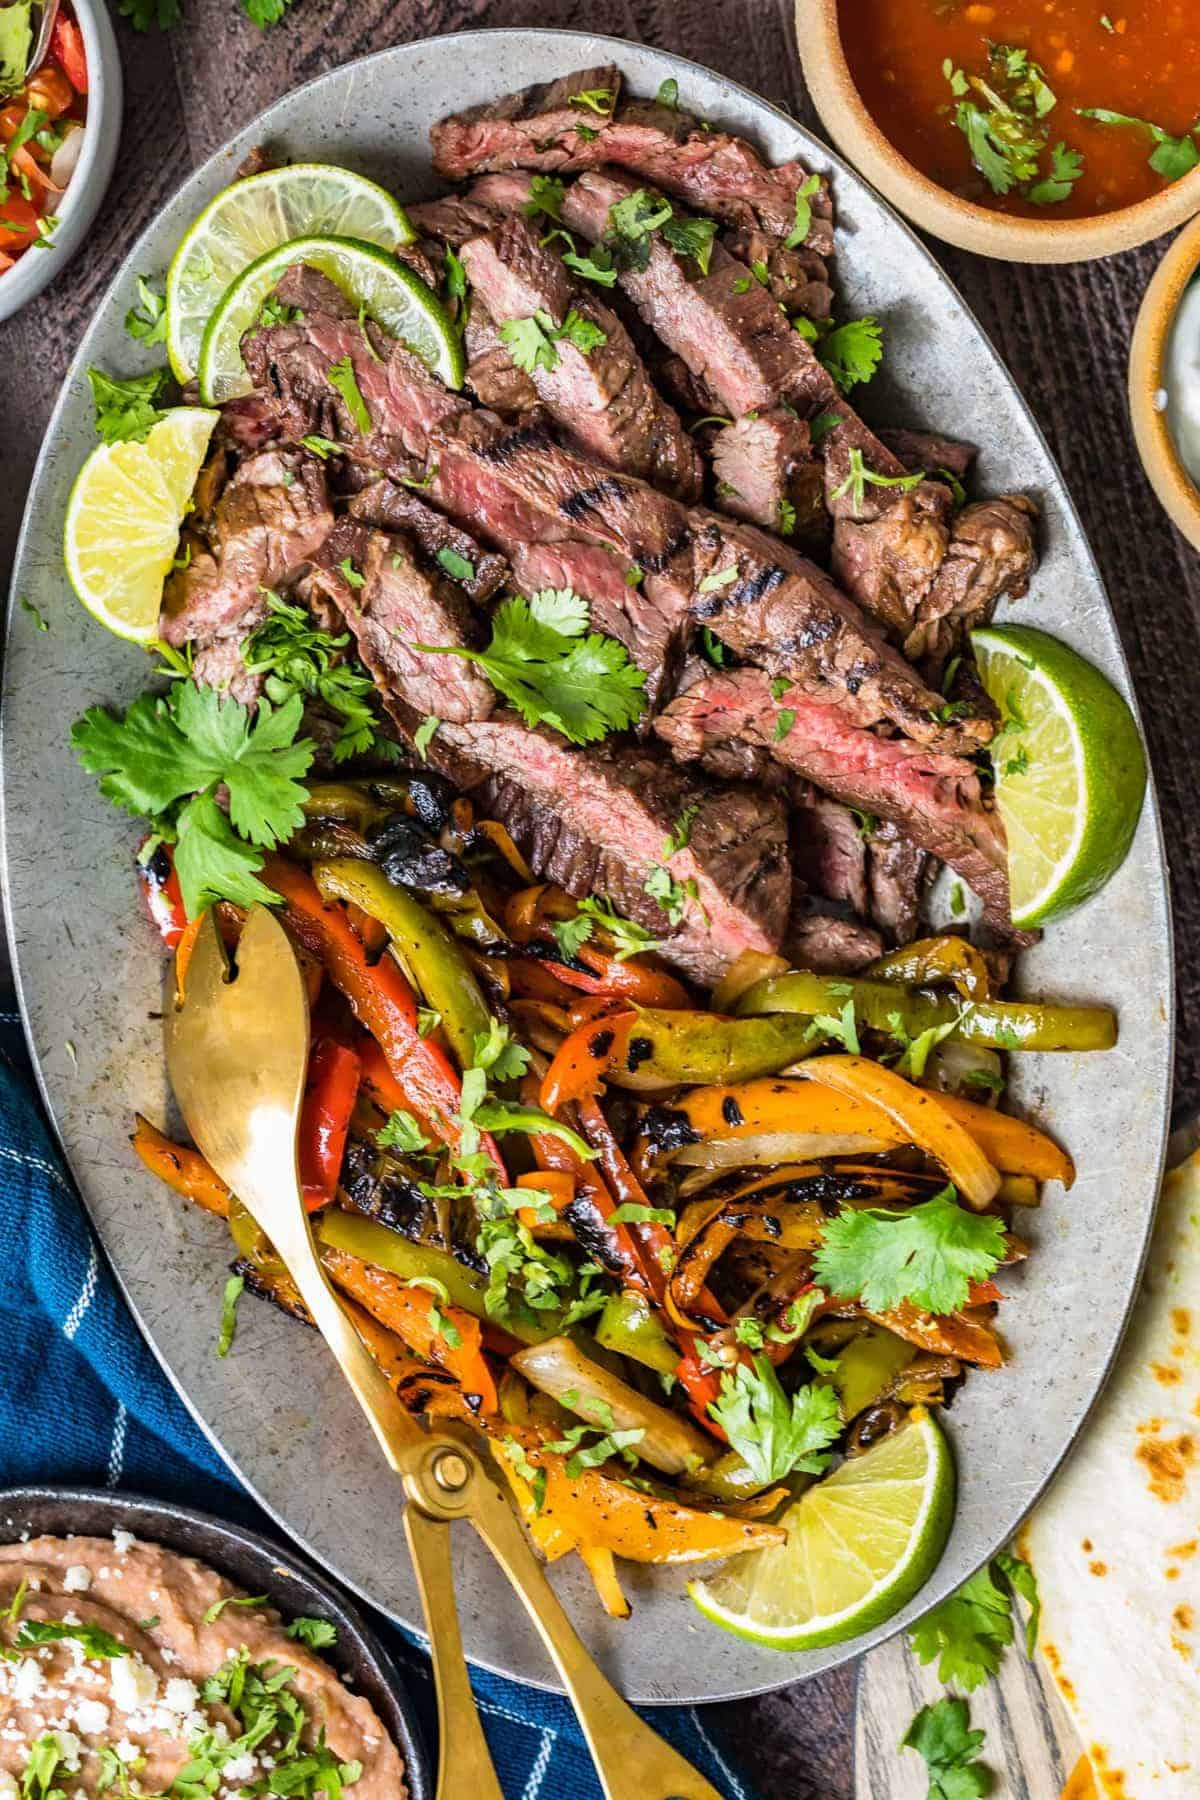 Steak and vegetable fajitas on a large serving plate